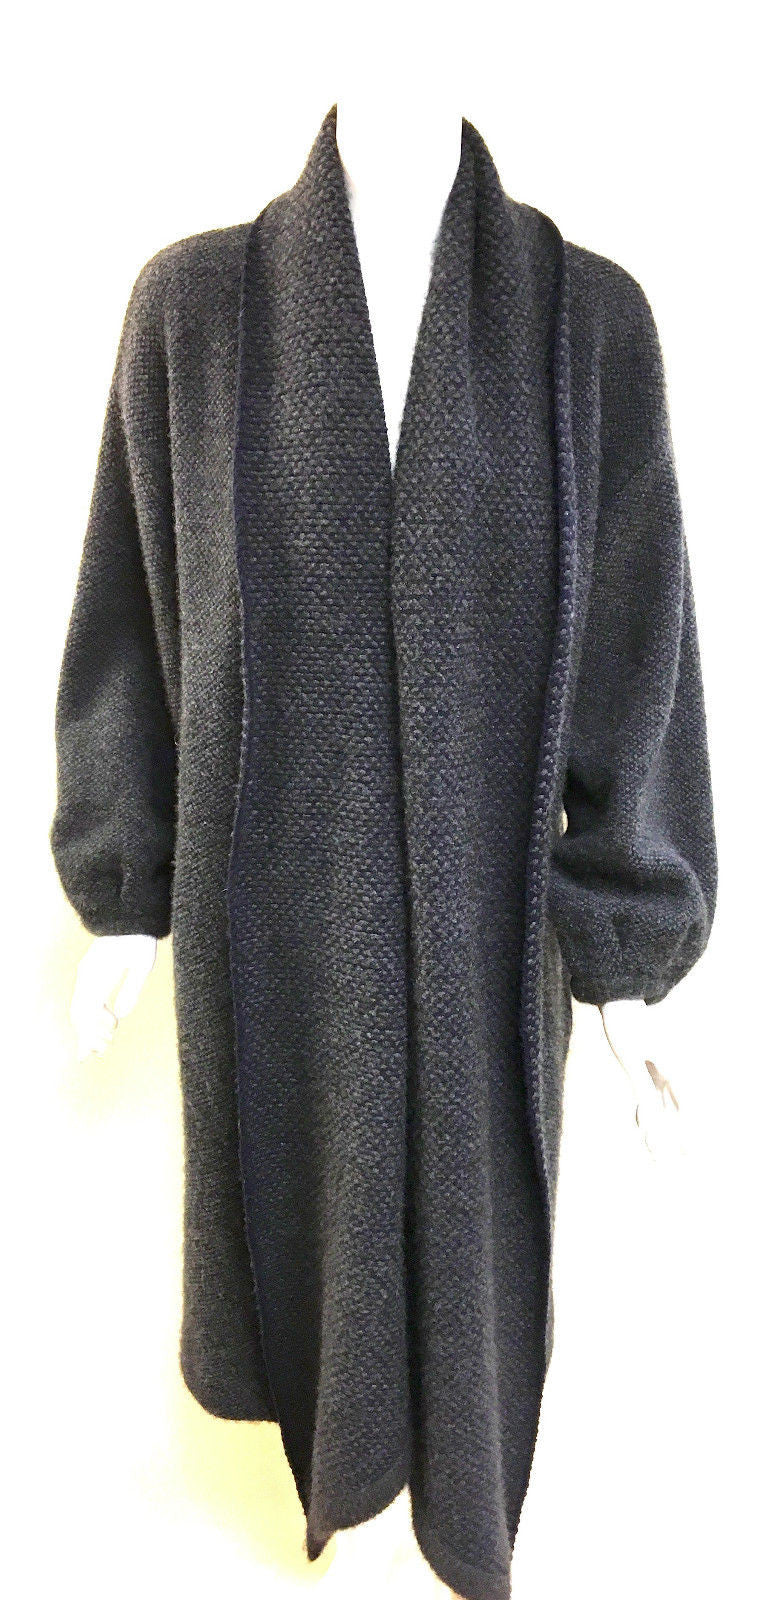 bisbiz.com HERMES Graphite-Gray/Navy Cashmere Knit Coat & Shawl  Size: S/M - Bis Luxury Resale